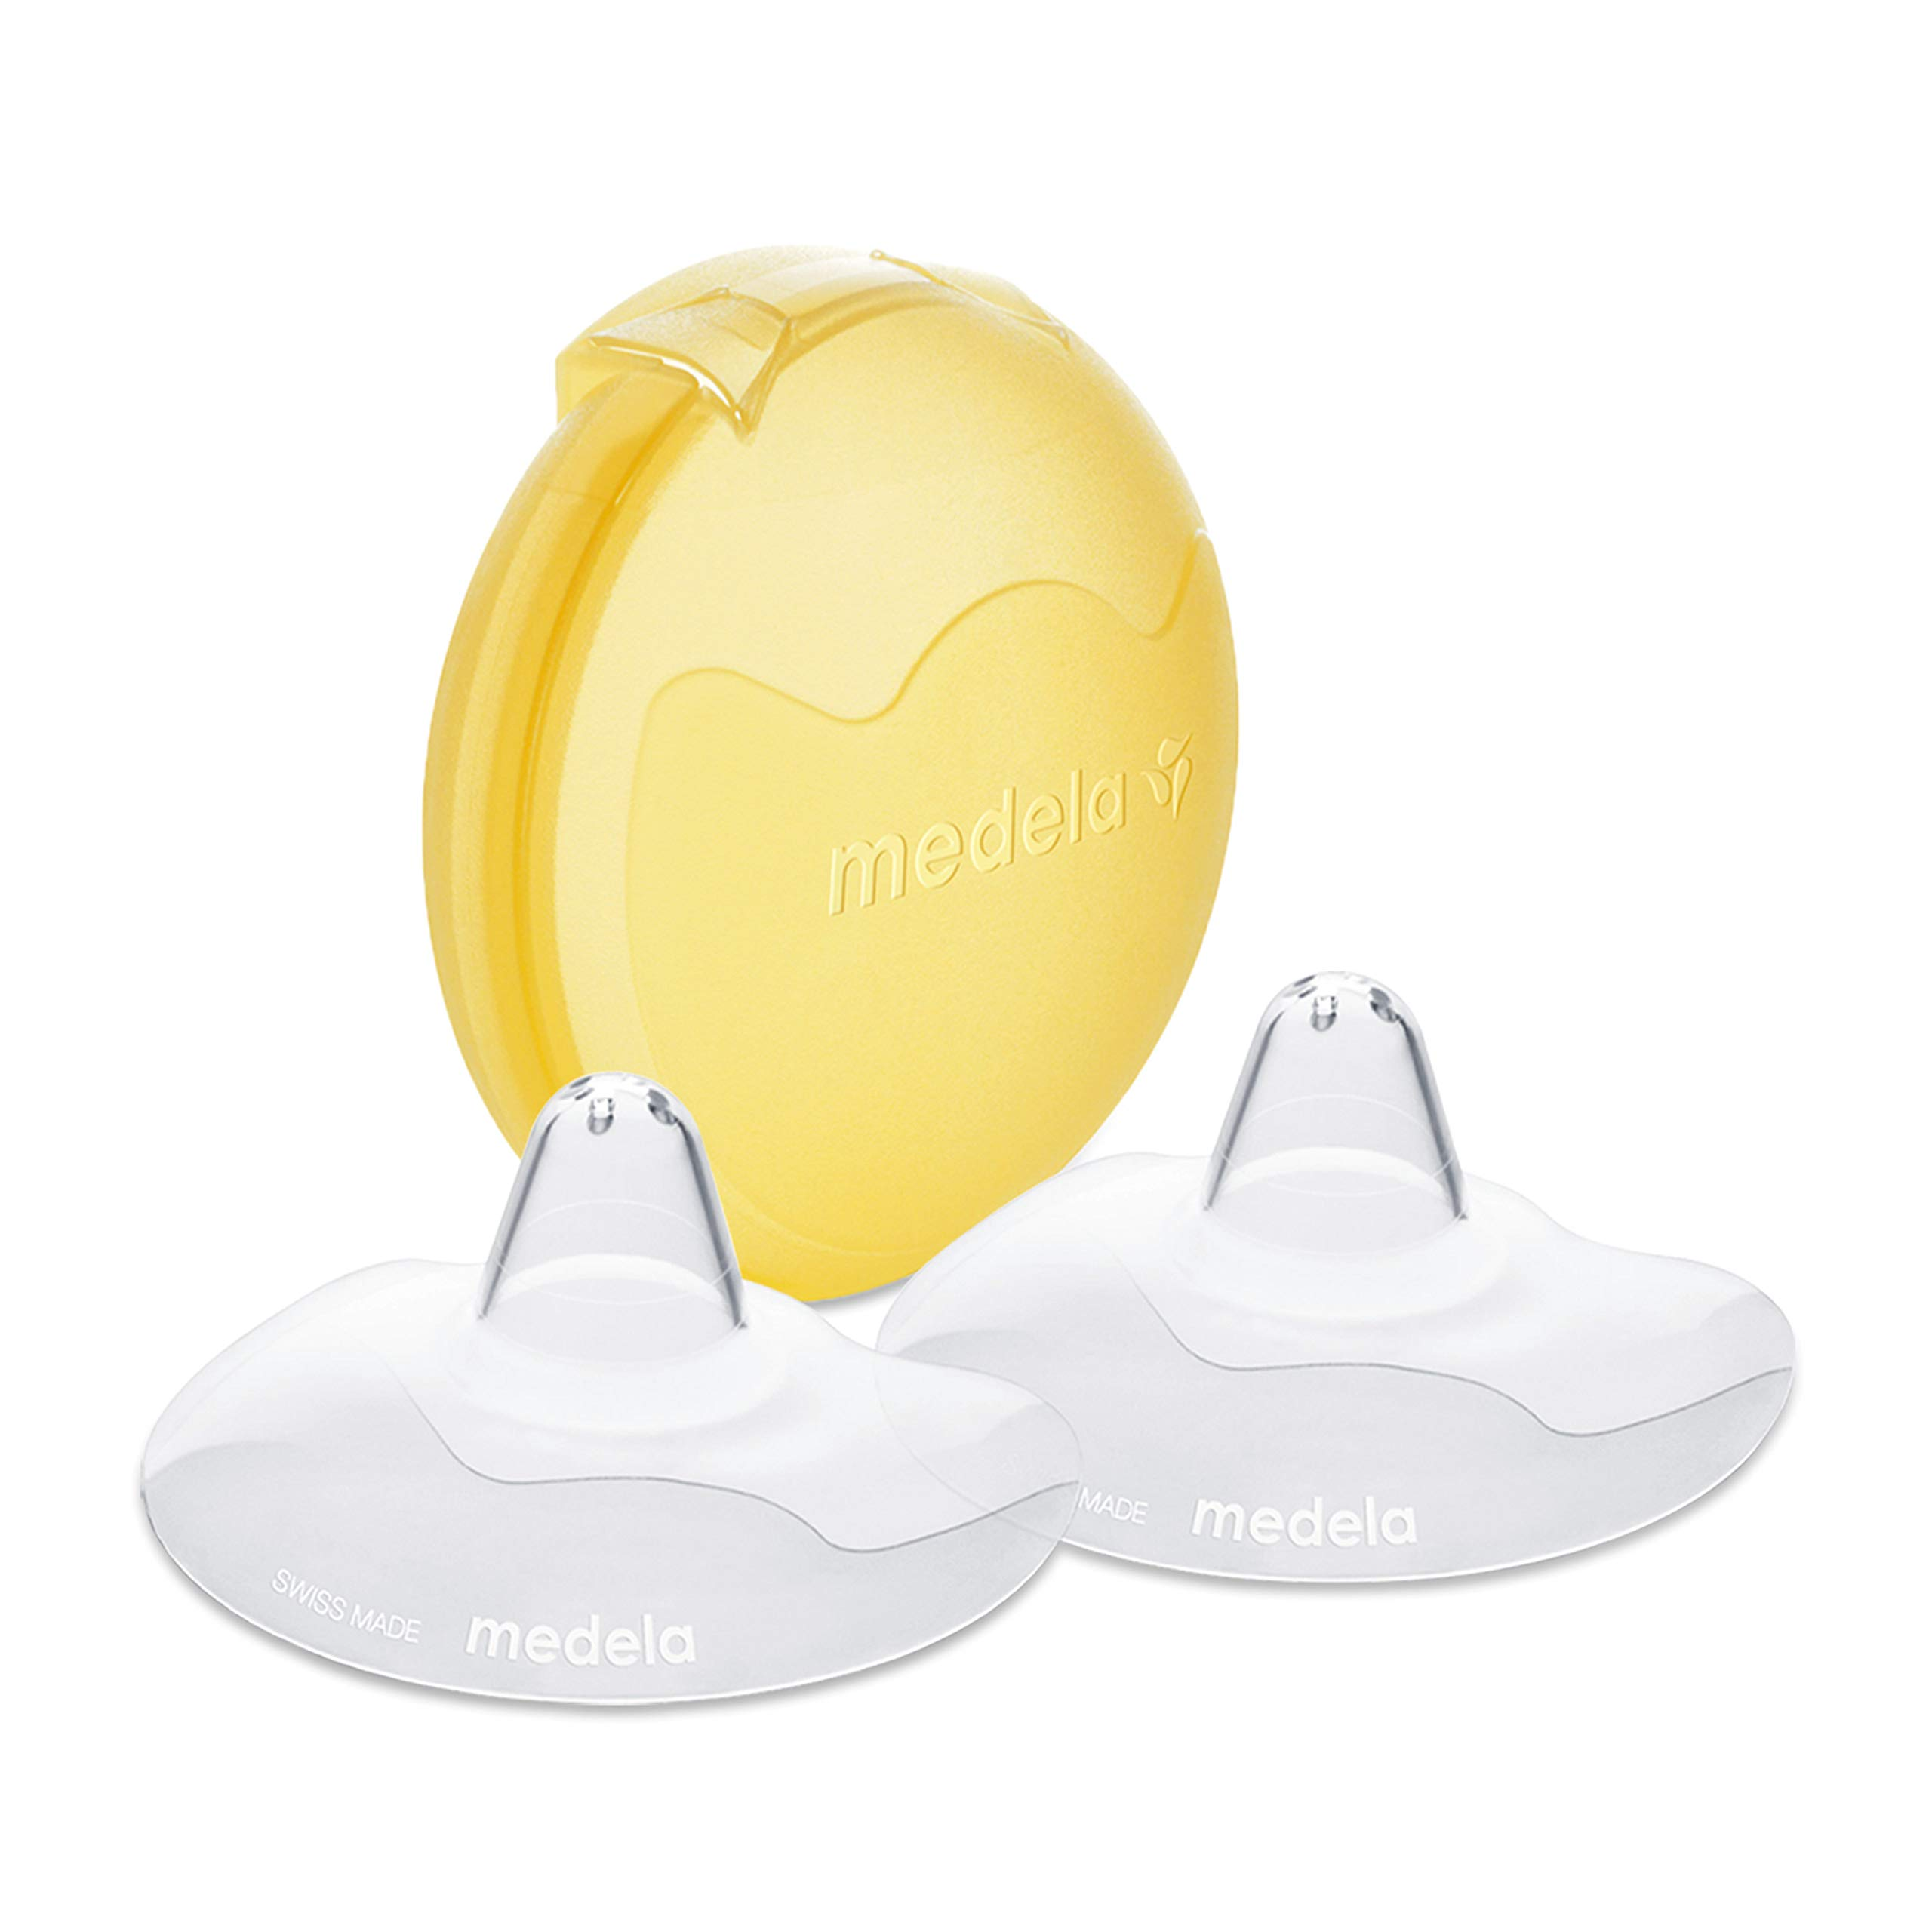 Medela Contact Nipple Shield for Breastfeeding, 16mm Extra Small Nippleshield, For Latch Difficulties or Flat or…